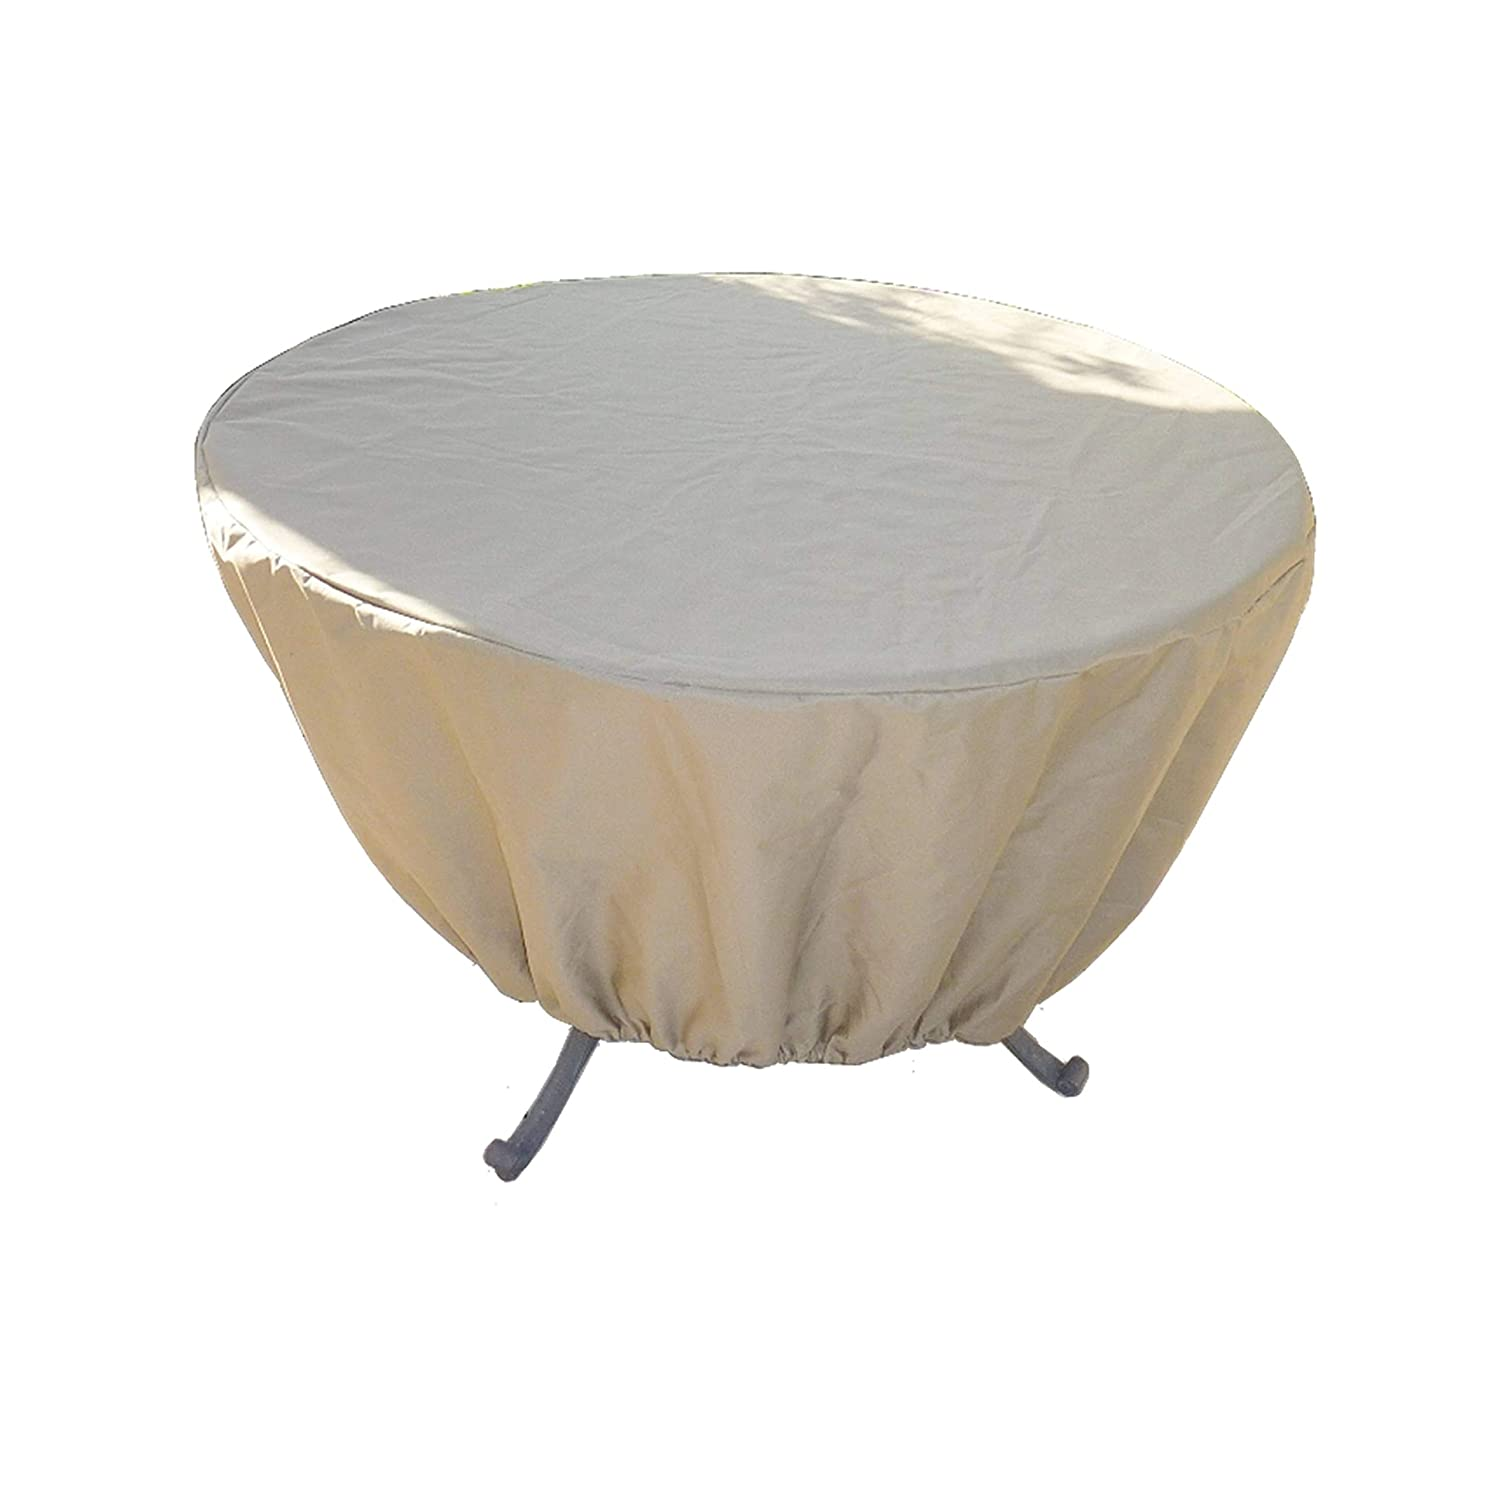 Formosa Covers Premium Tight Weave Round or Square Table Cover up to 50 Dia. x 25 H in Taupe